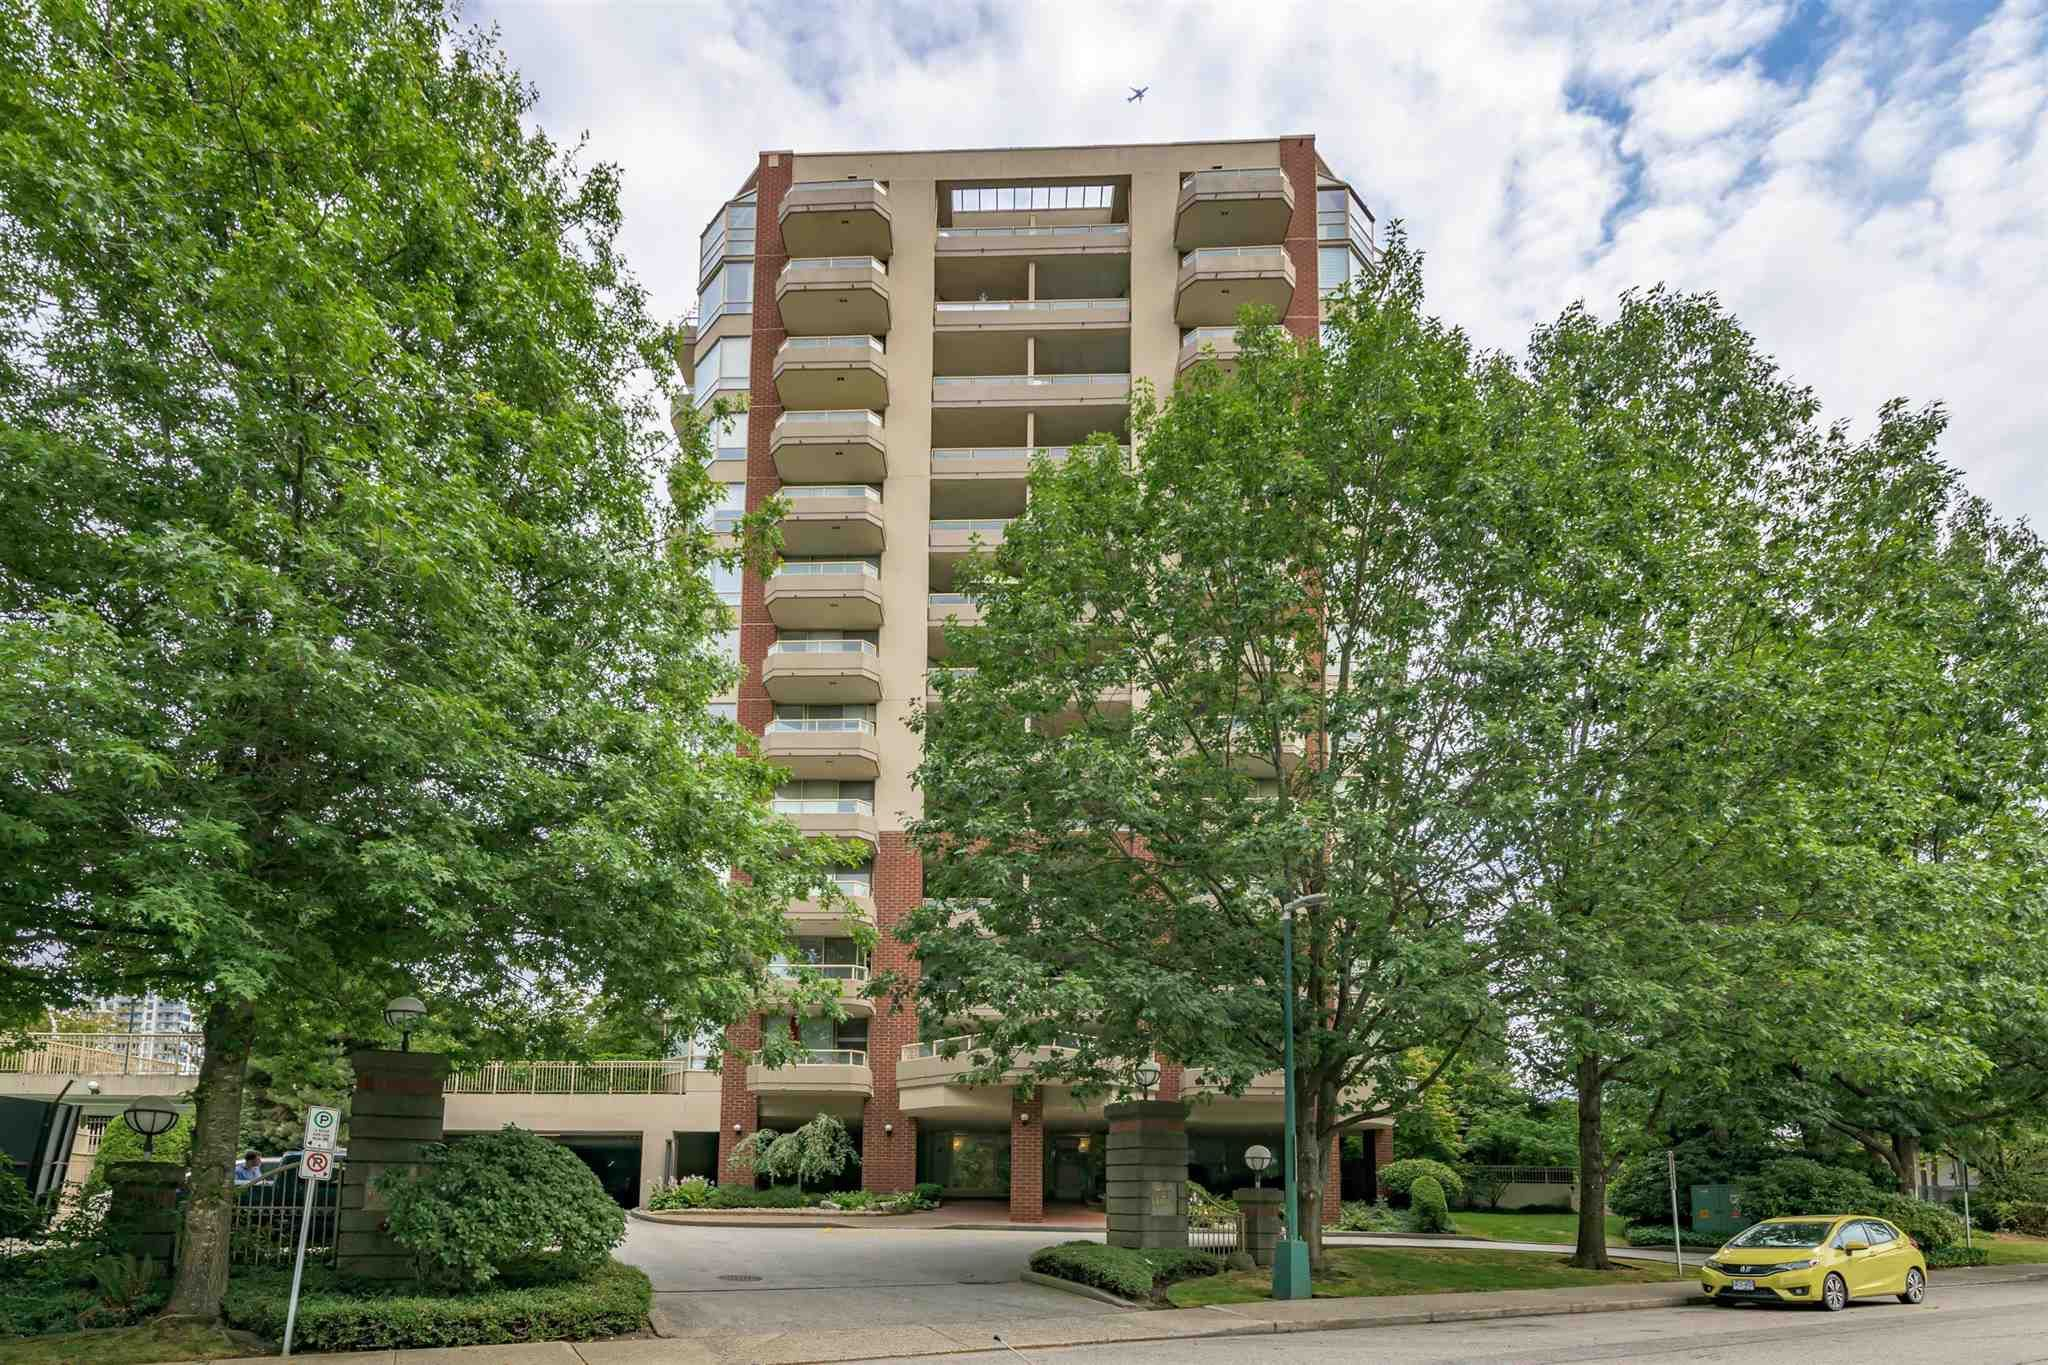 """Main Photo: 1401 728 FARROW Street in Coquitlam: Coquitlam West Condo for sale in """"THE VICTORIA"""" : MLS®# R2601439"""